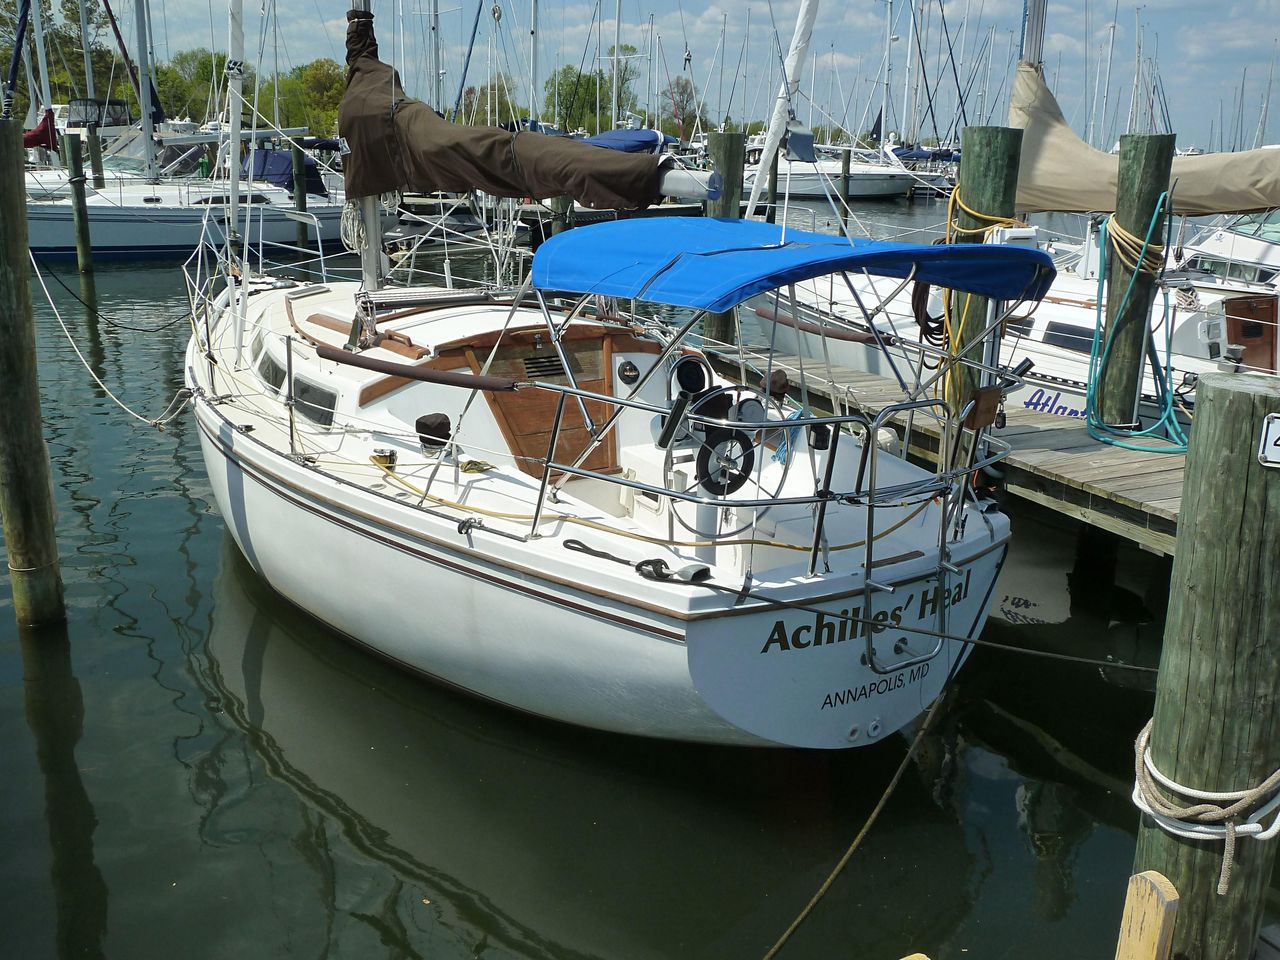 1984 Used Catalina 30 Cruiser Sailboat For Sale - $9,900